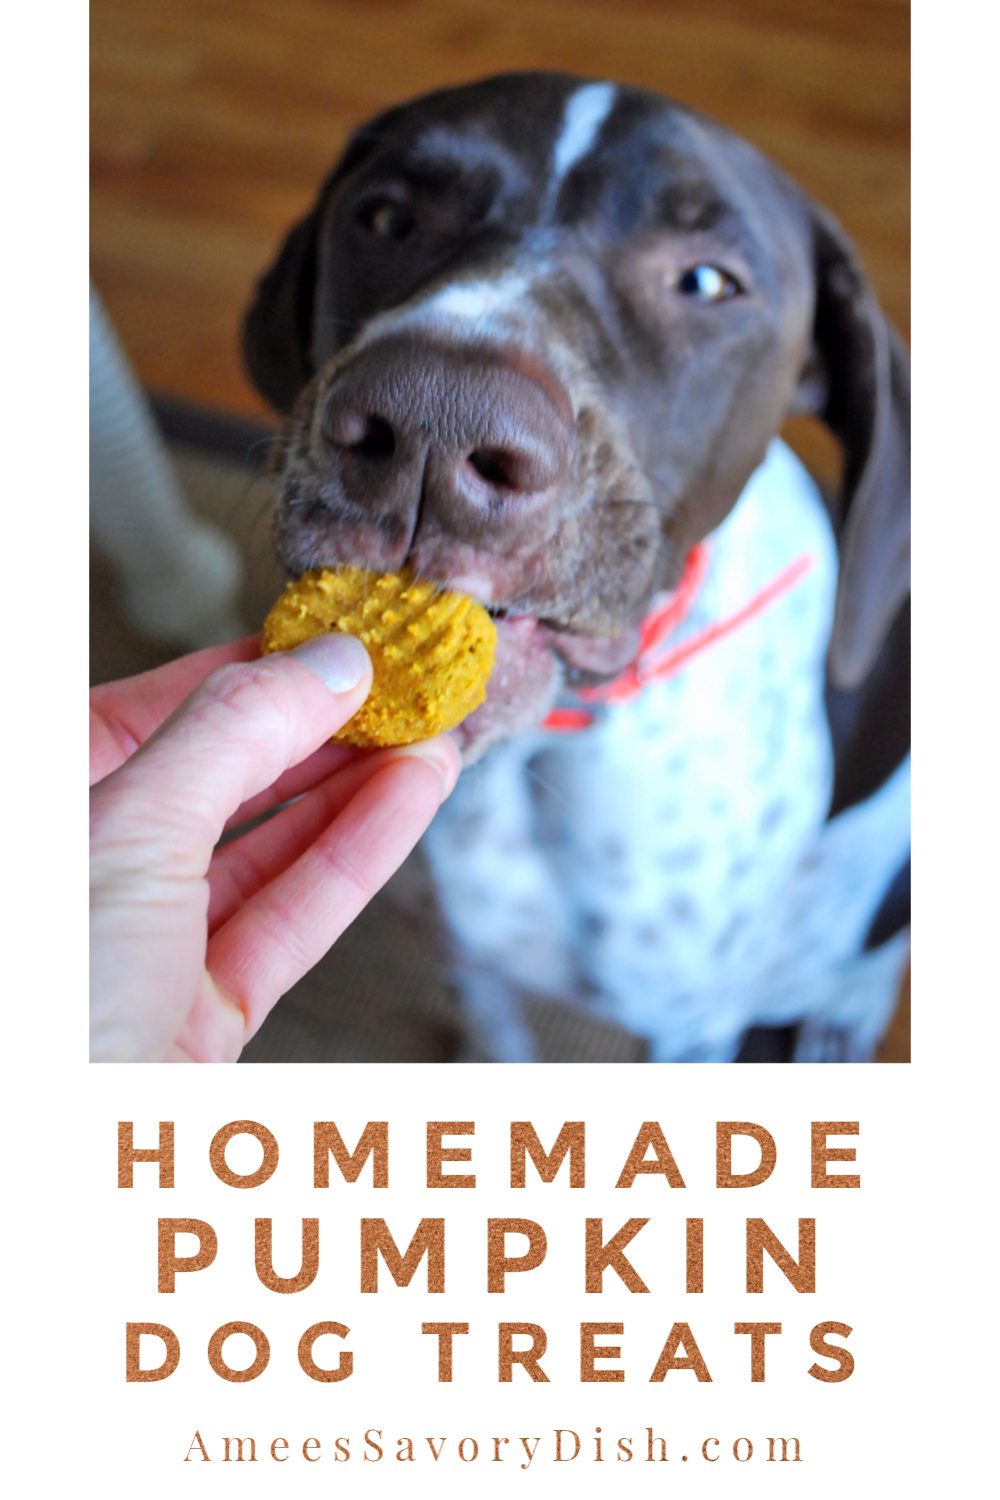 Homemade pumpkin dog treats are easy to make and more nutritious for your furry friend than the store-bought counterparts.  These simple homemade dog treats are made with wholesome real food ingredients. #homemadedogtreats #pumpkindogtreats #dogtreats via @Ameecooks